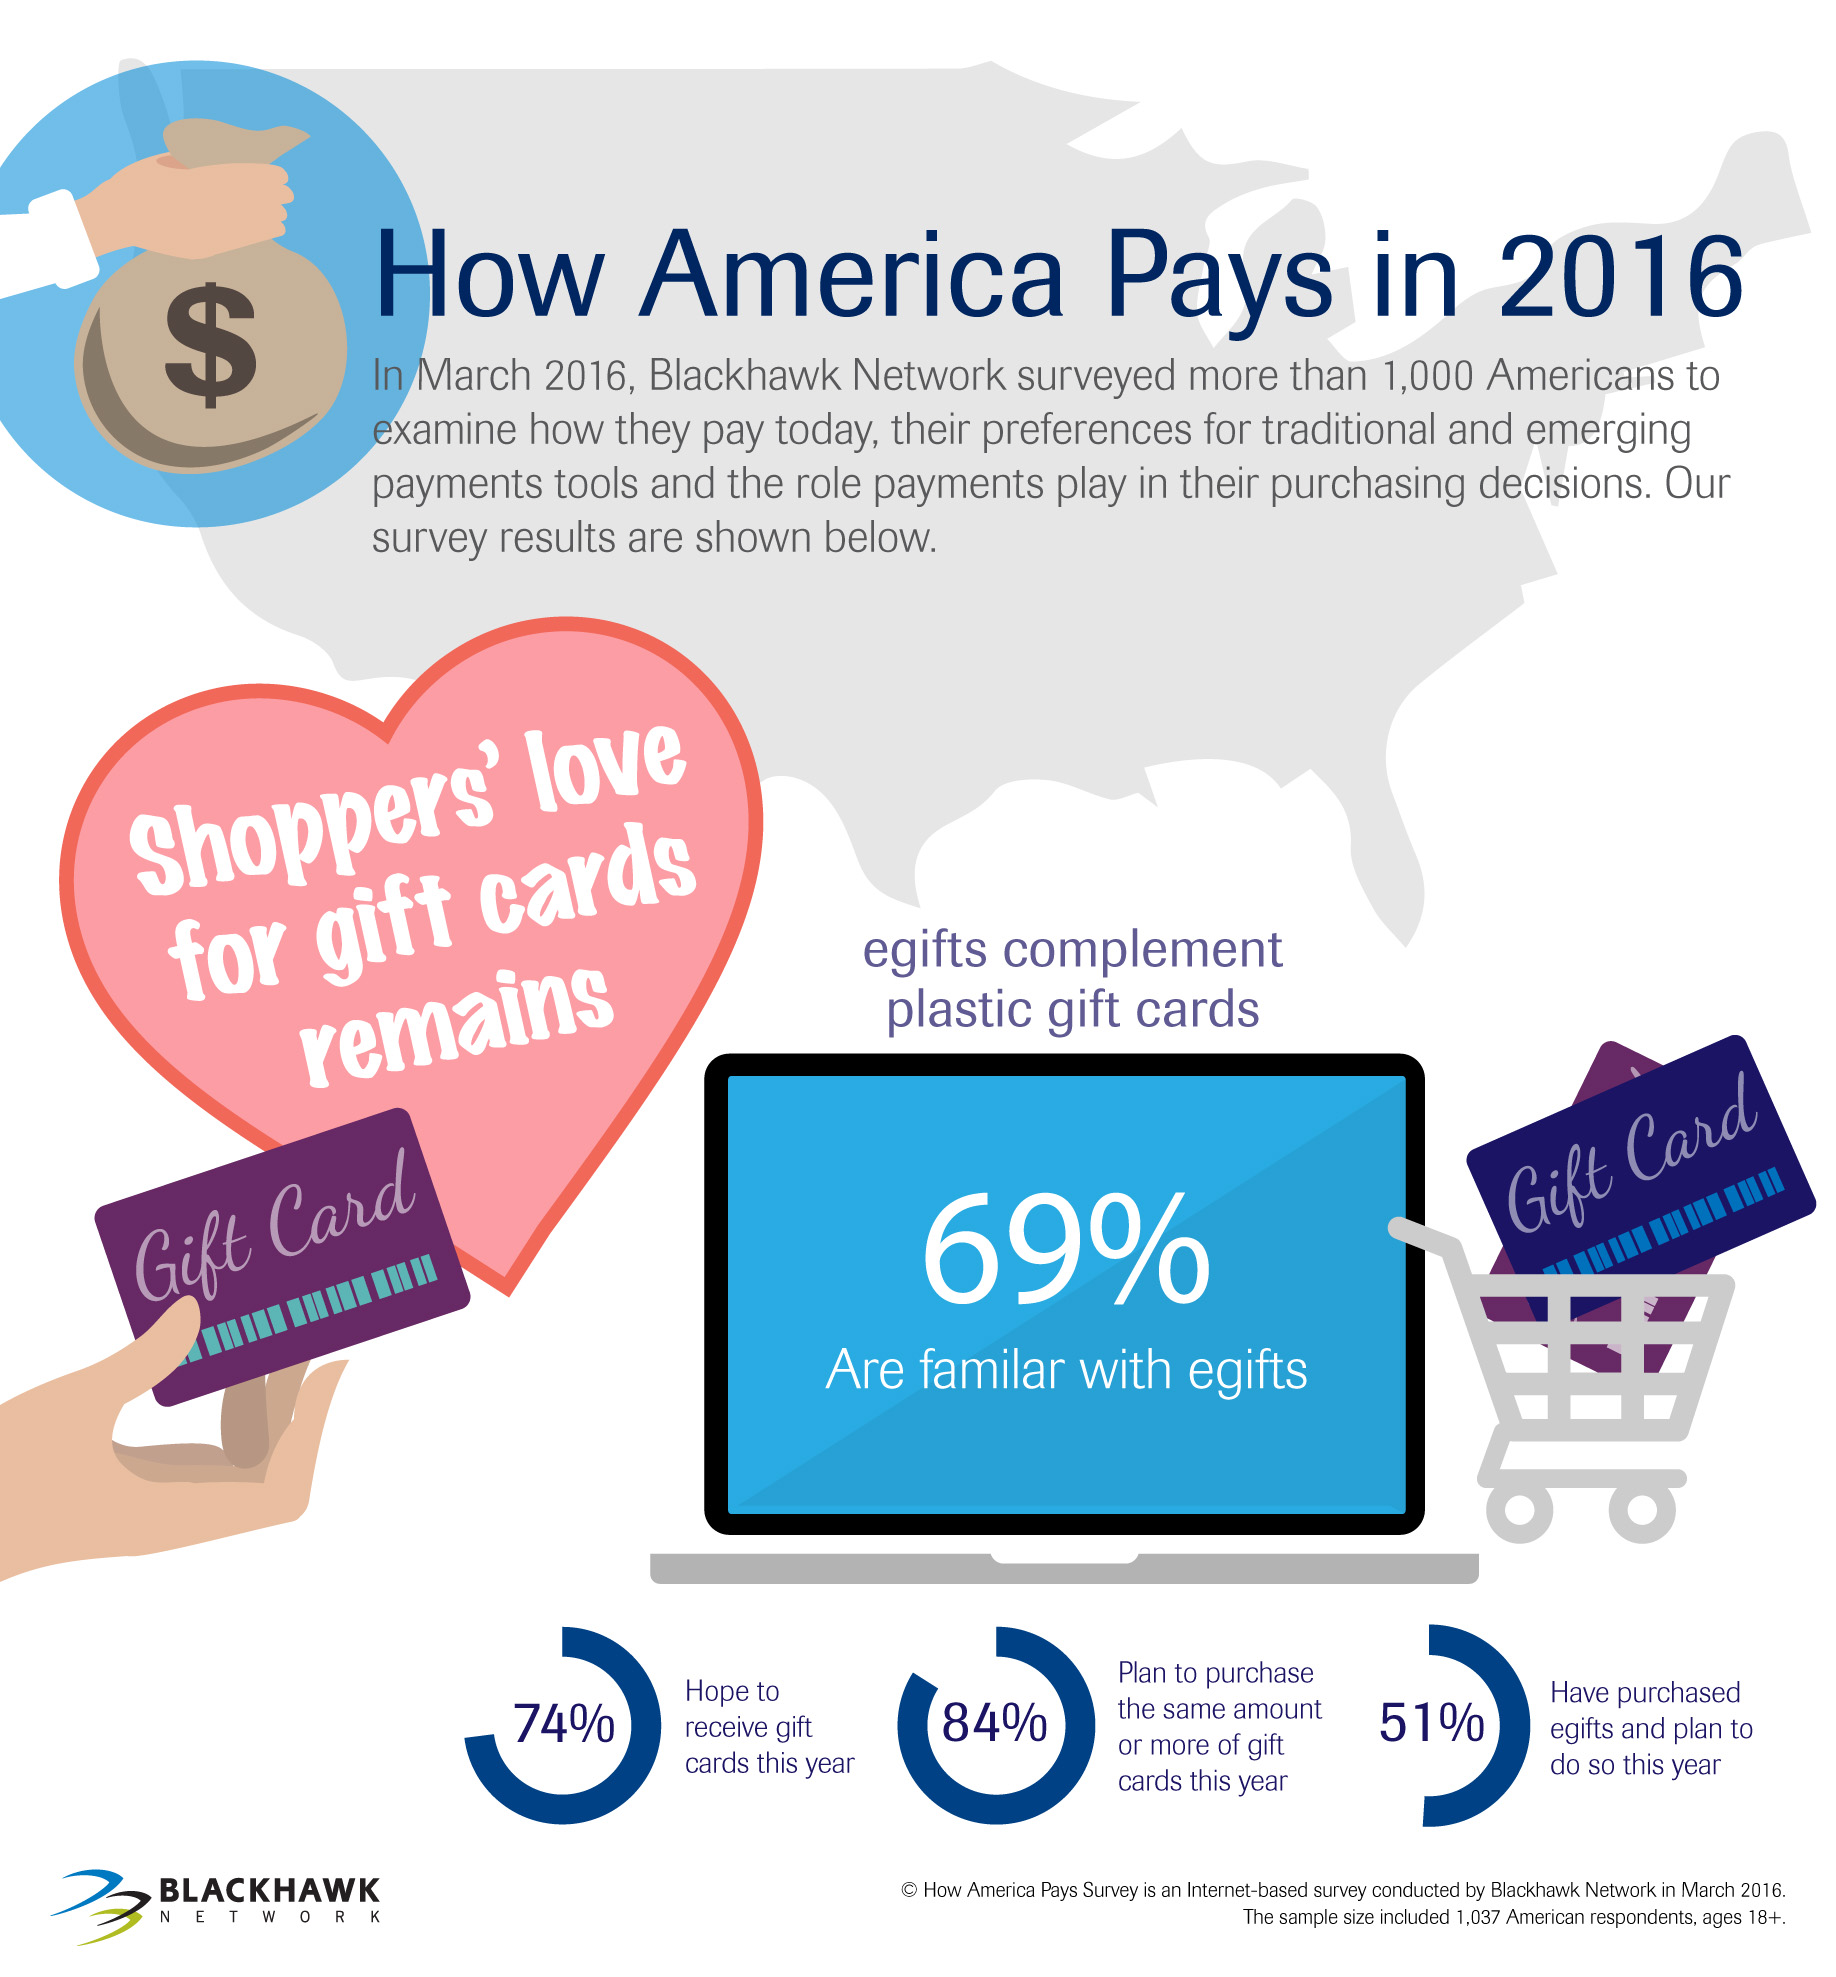 Shoppers' love for gift cards remains